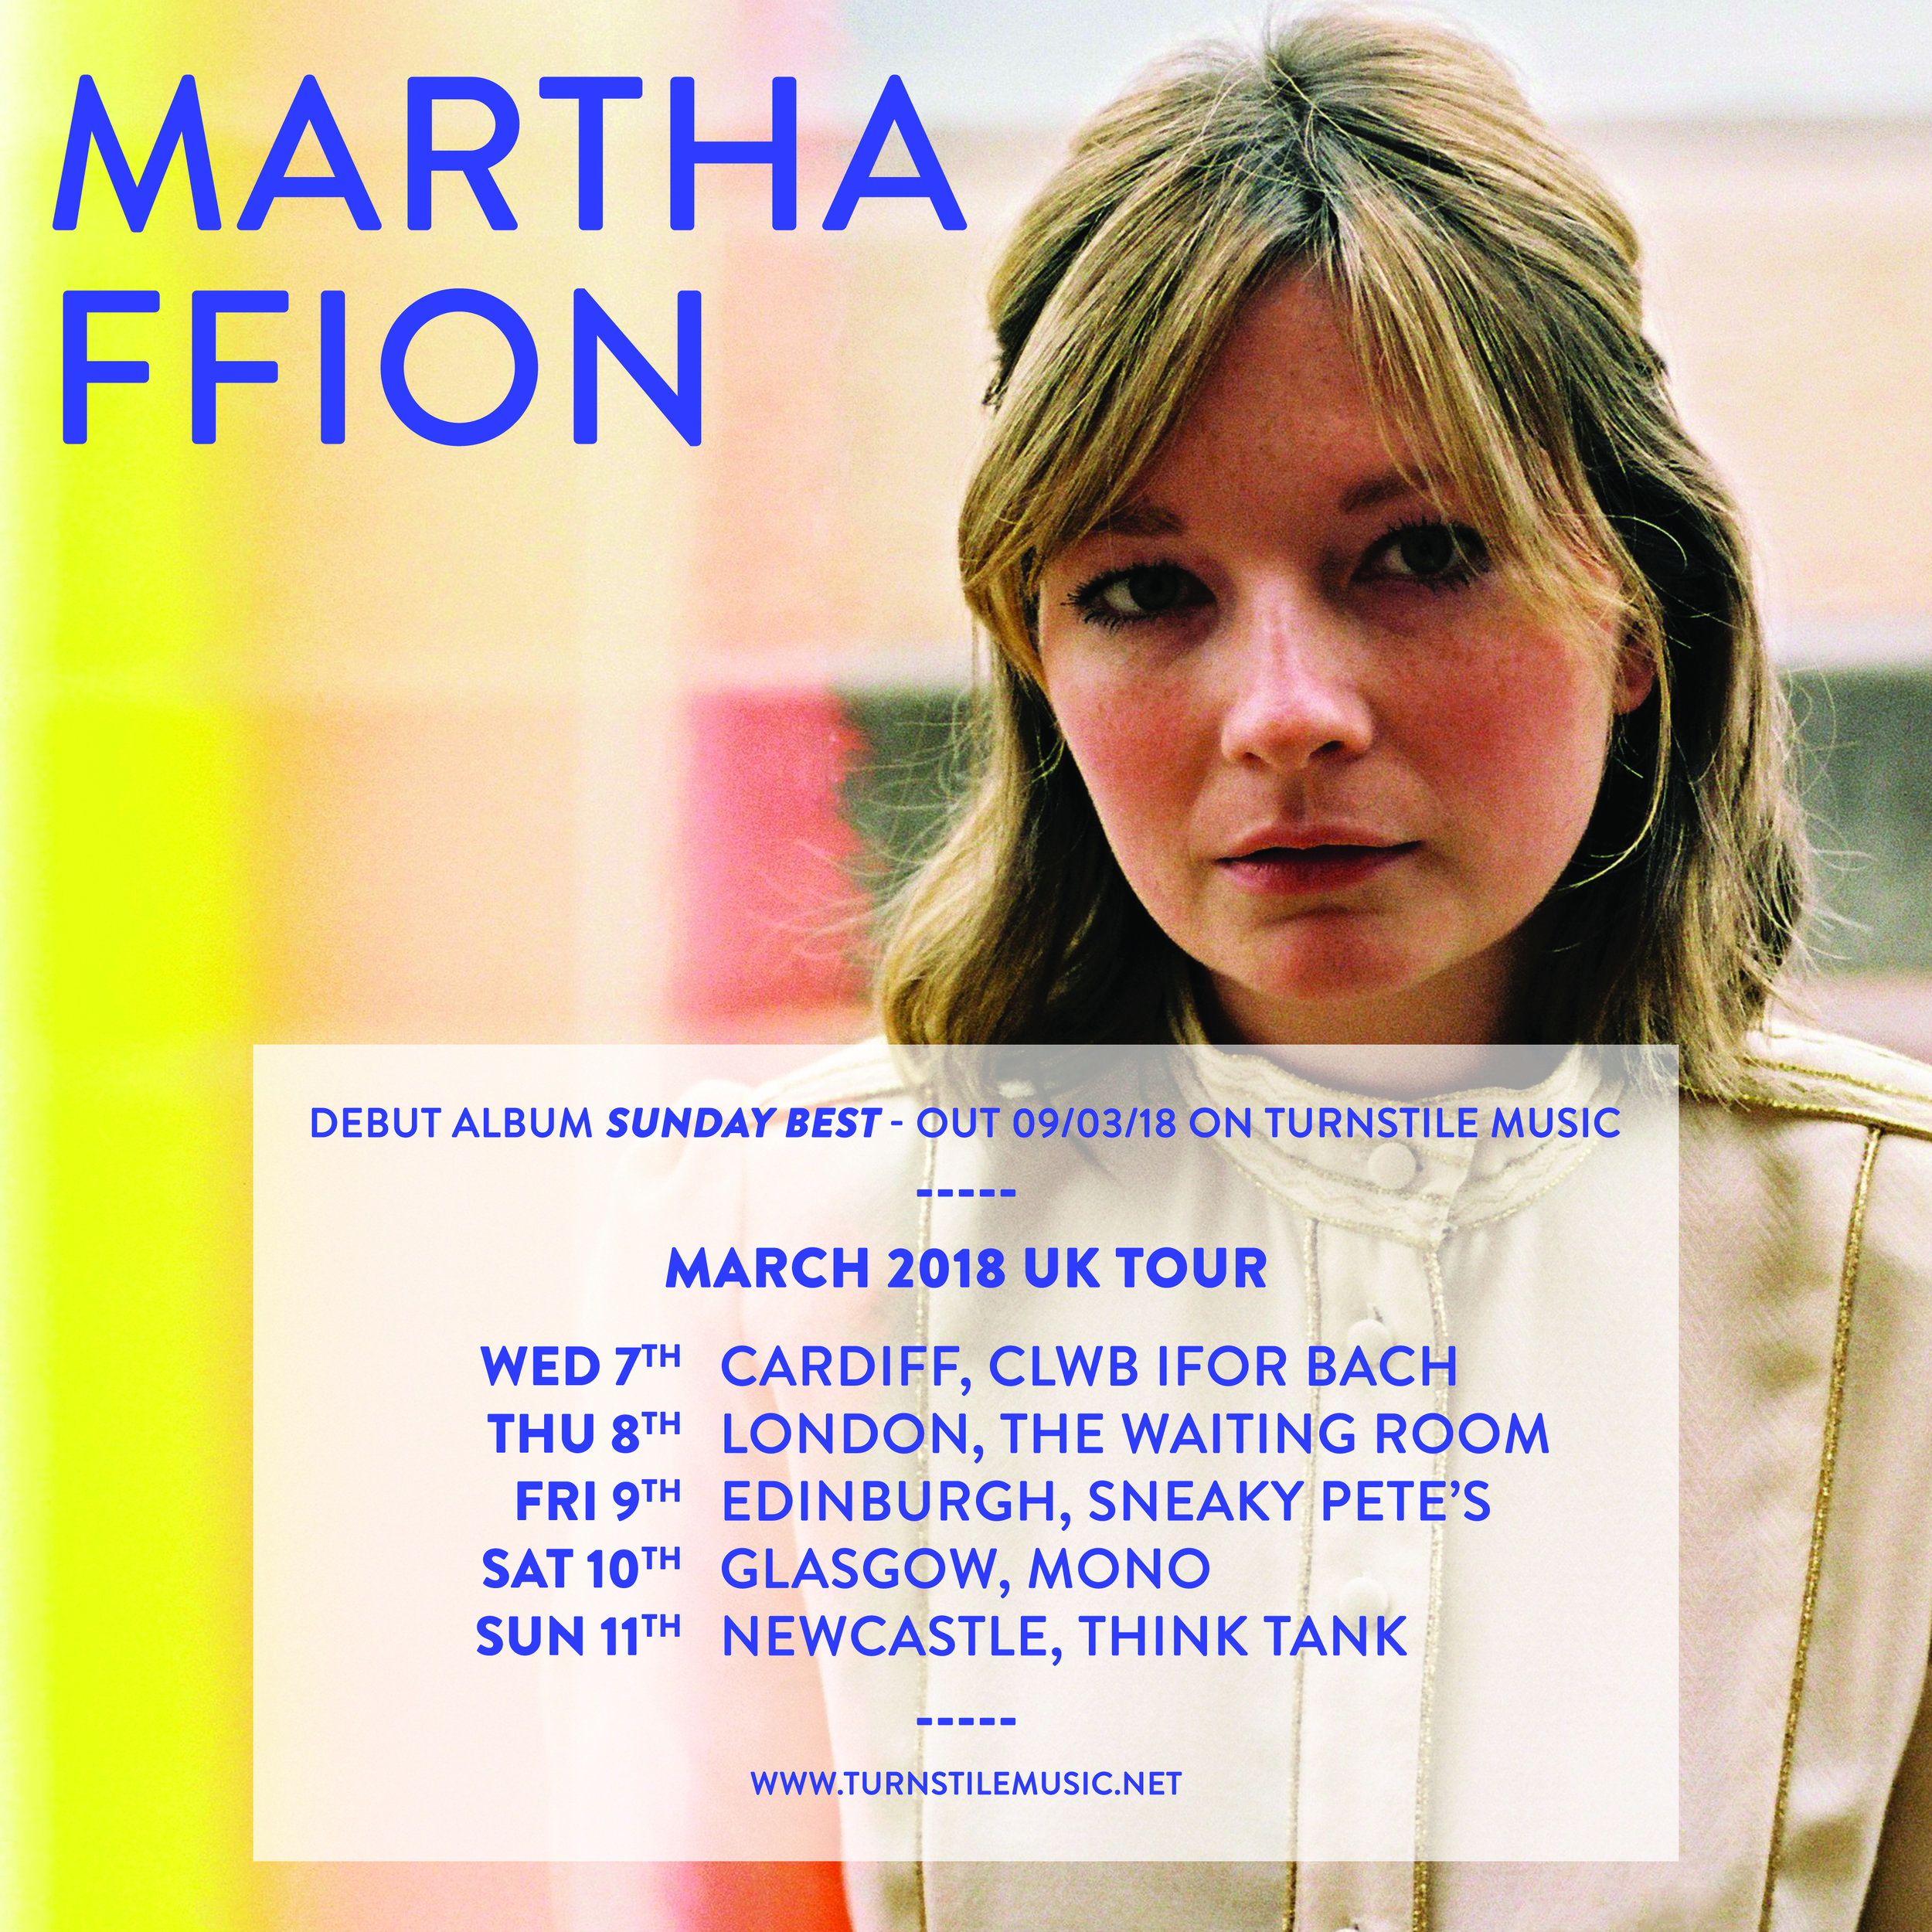 Martha Ffion March 2018 Tour INSTA.jpg